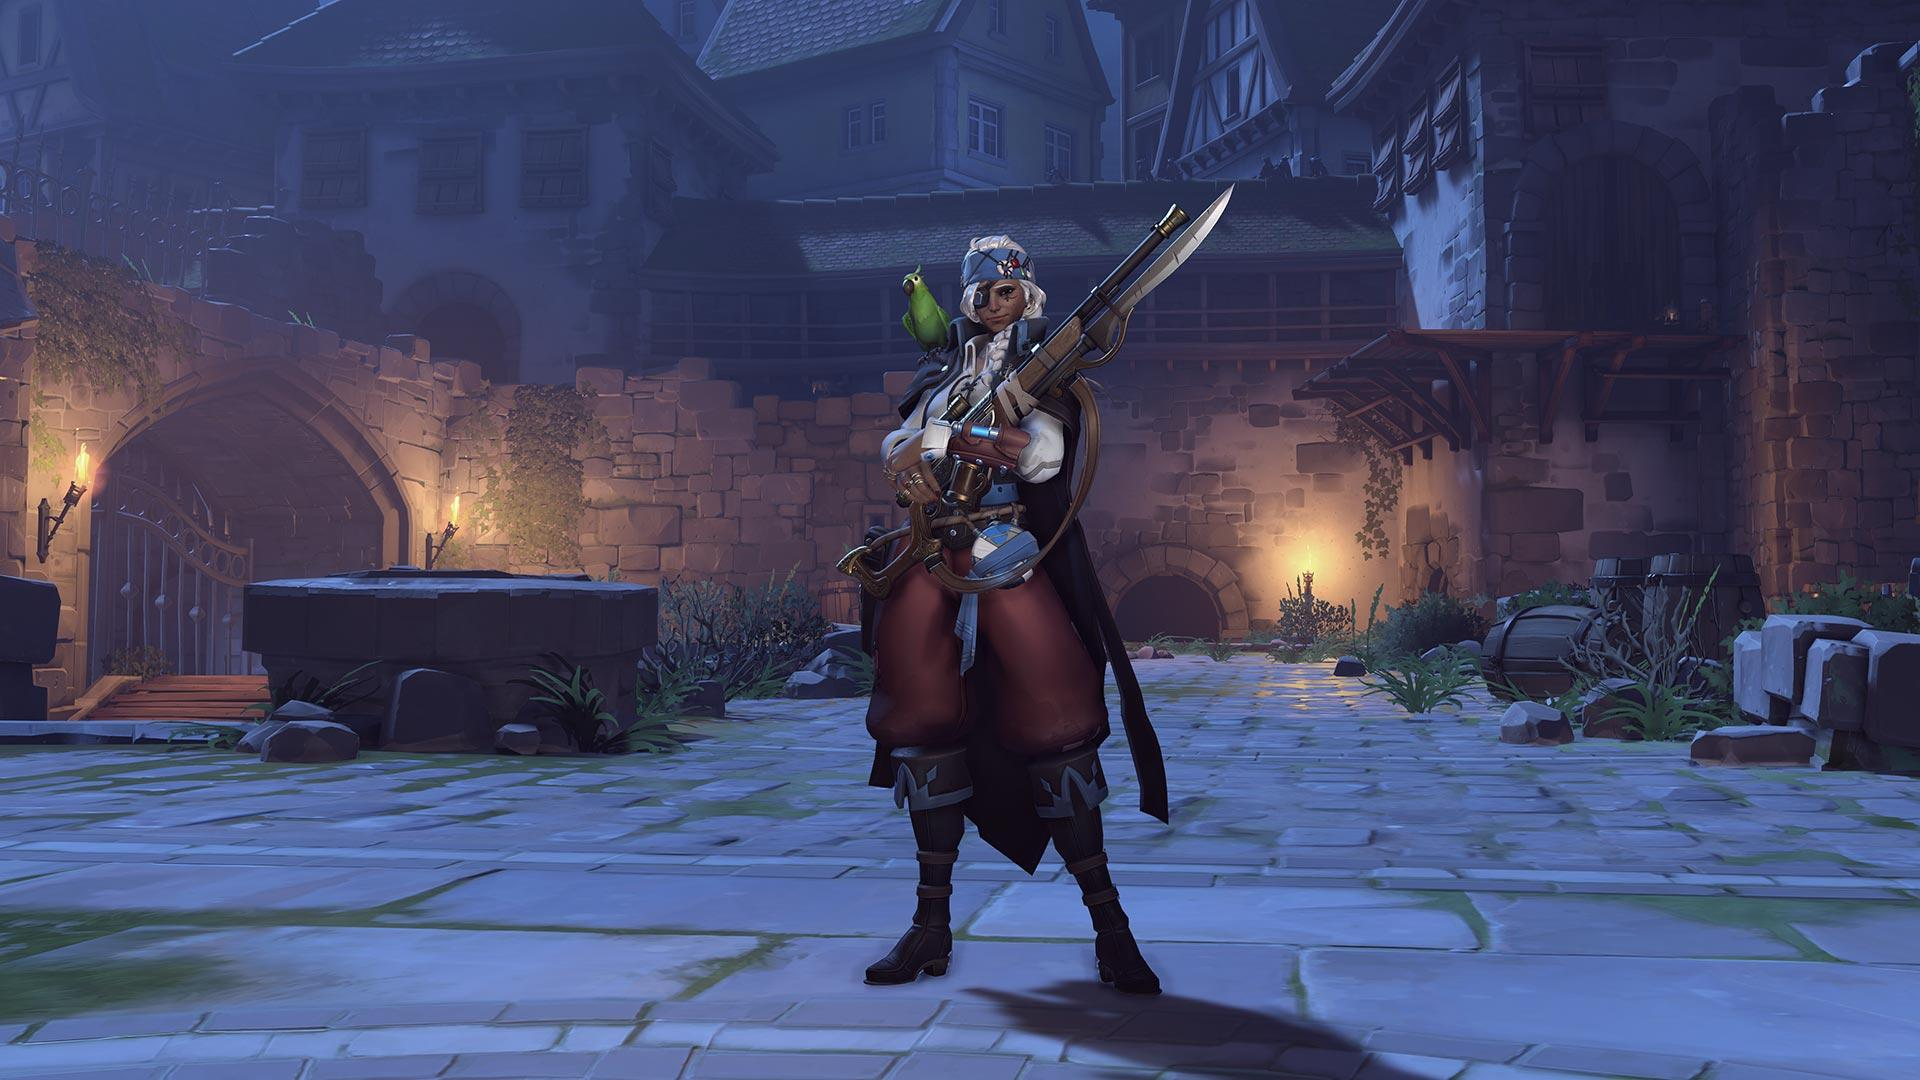 overwatch halloween terror 2017 new skins 1 - Скины на хэллоуин Overwatch 2017cd